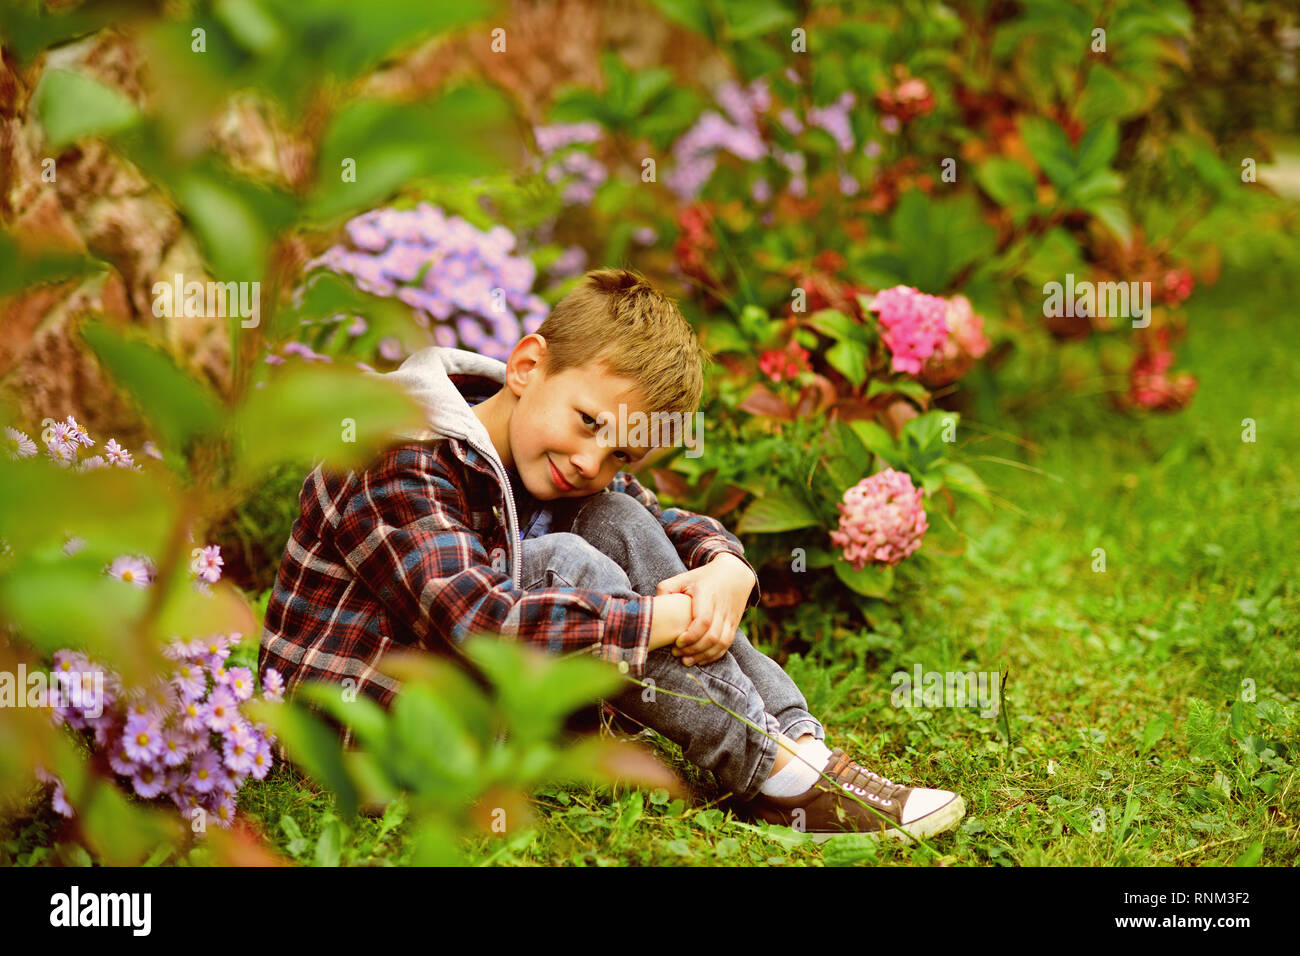 What to expect. Small boy relax in garden. Small boy expecting something. Live in the very soul of expectation of better things. Where expectation and - Stock Image